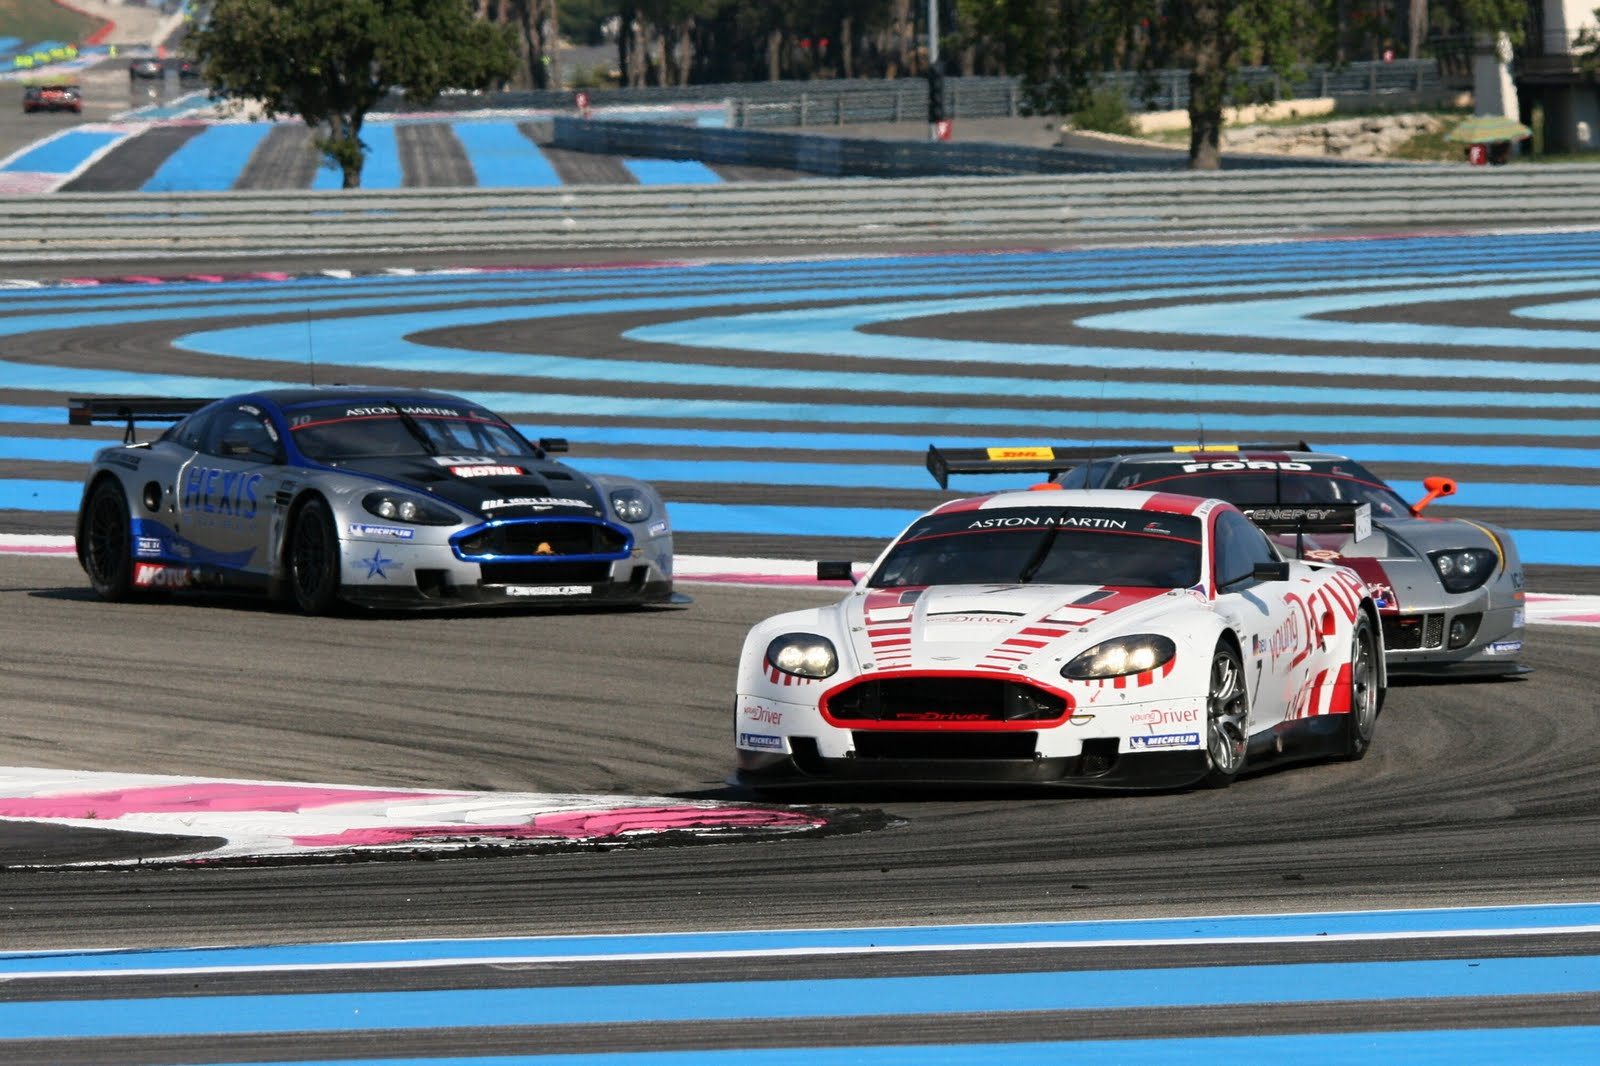 the GT1 World Championship